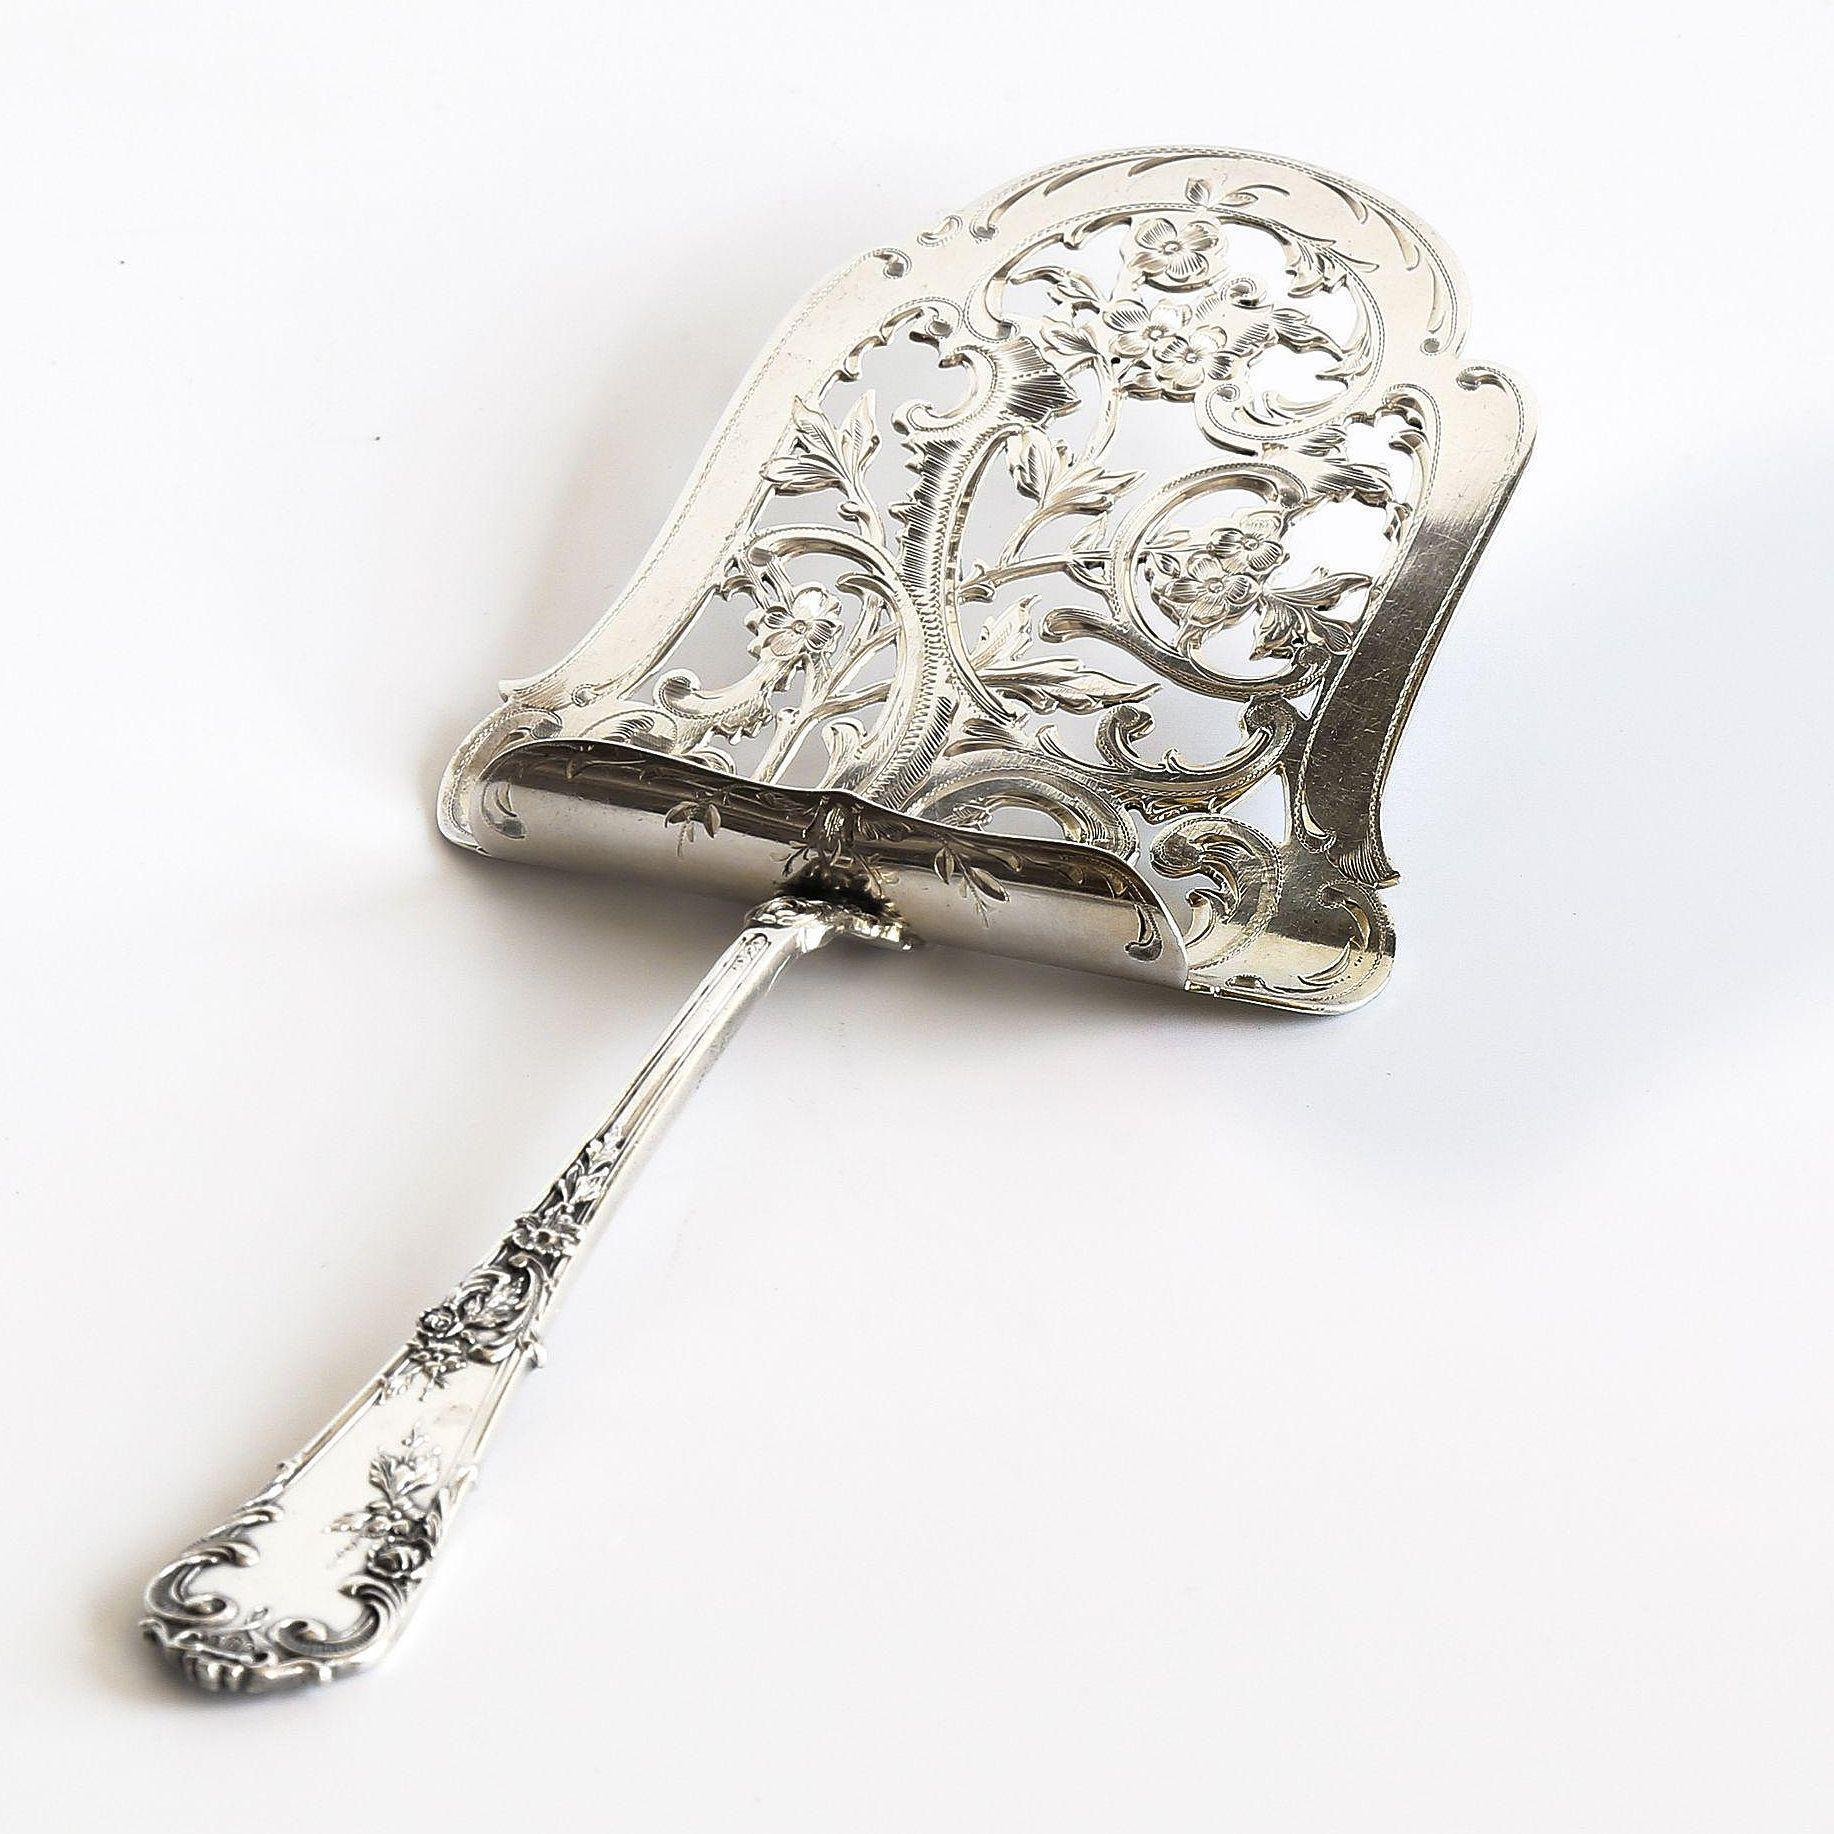 800 Silver Austrian Ornate Asparagus Server